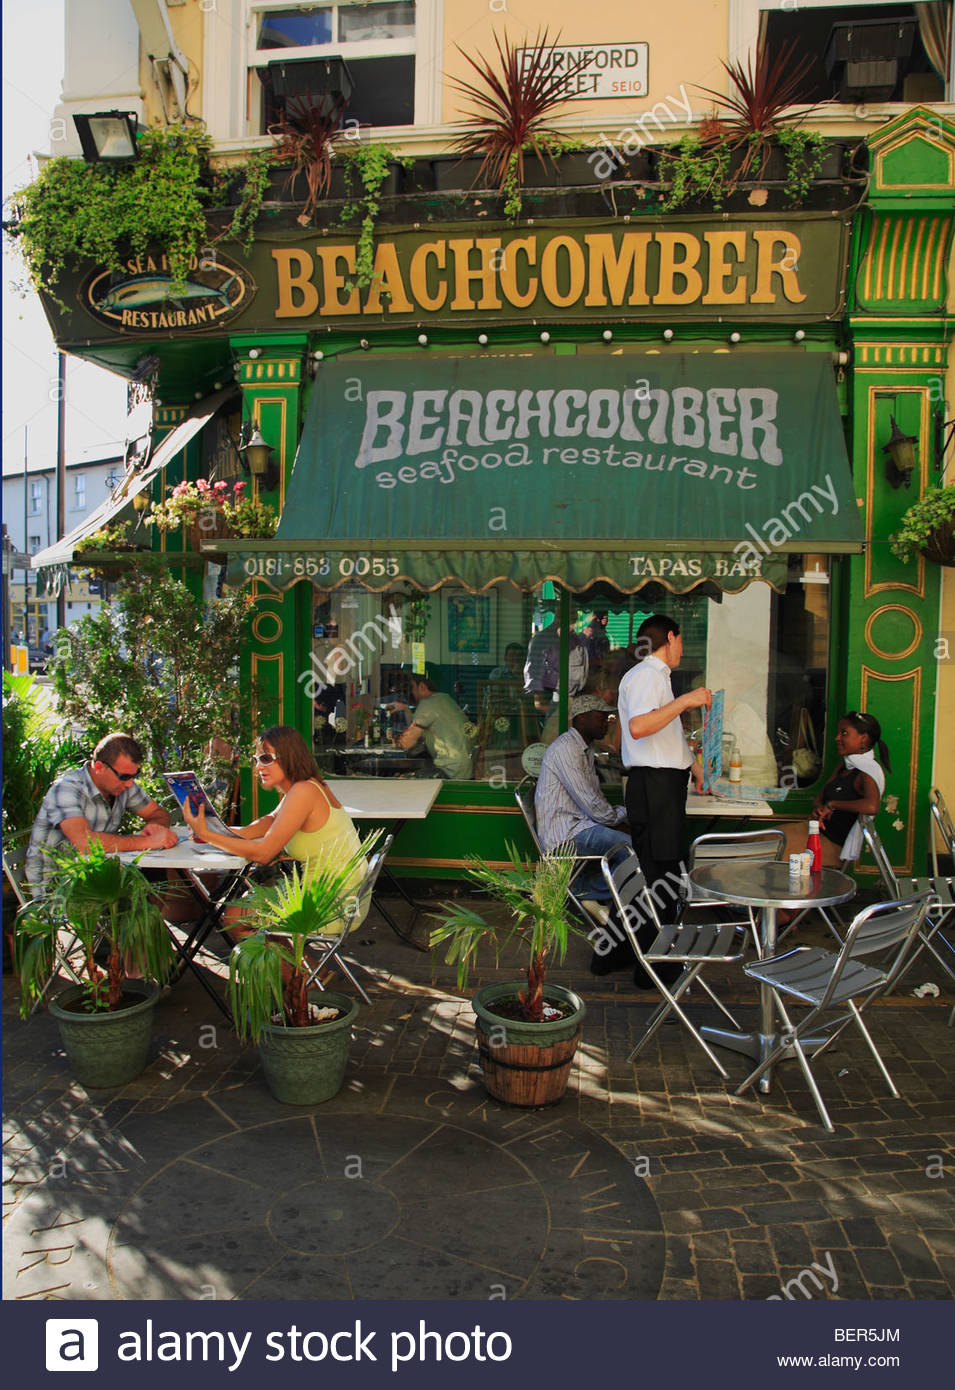 Beachcomber Restaurant Stock Photos & Beachcomber Restaurant Stock ...